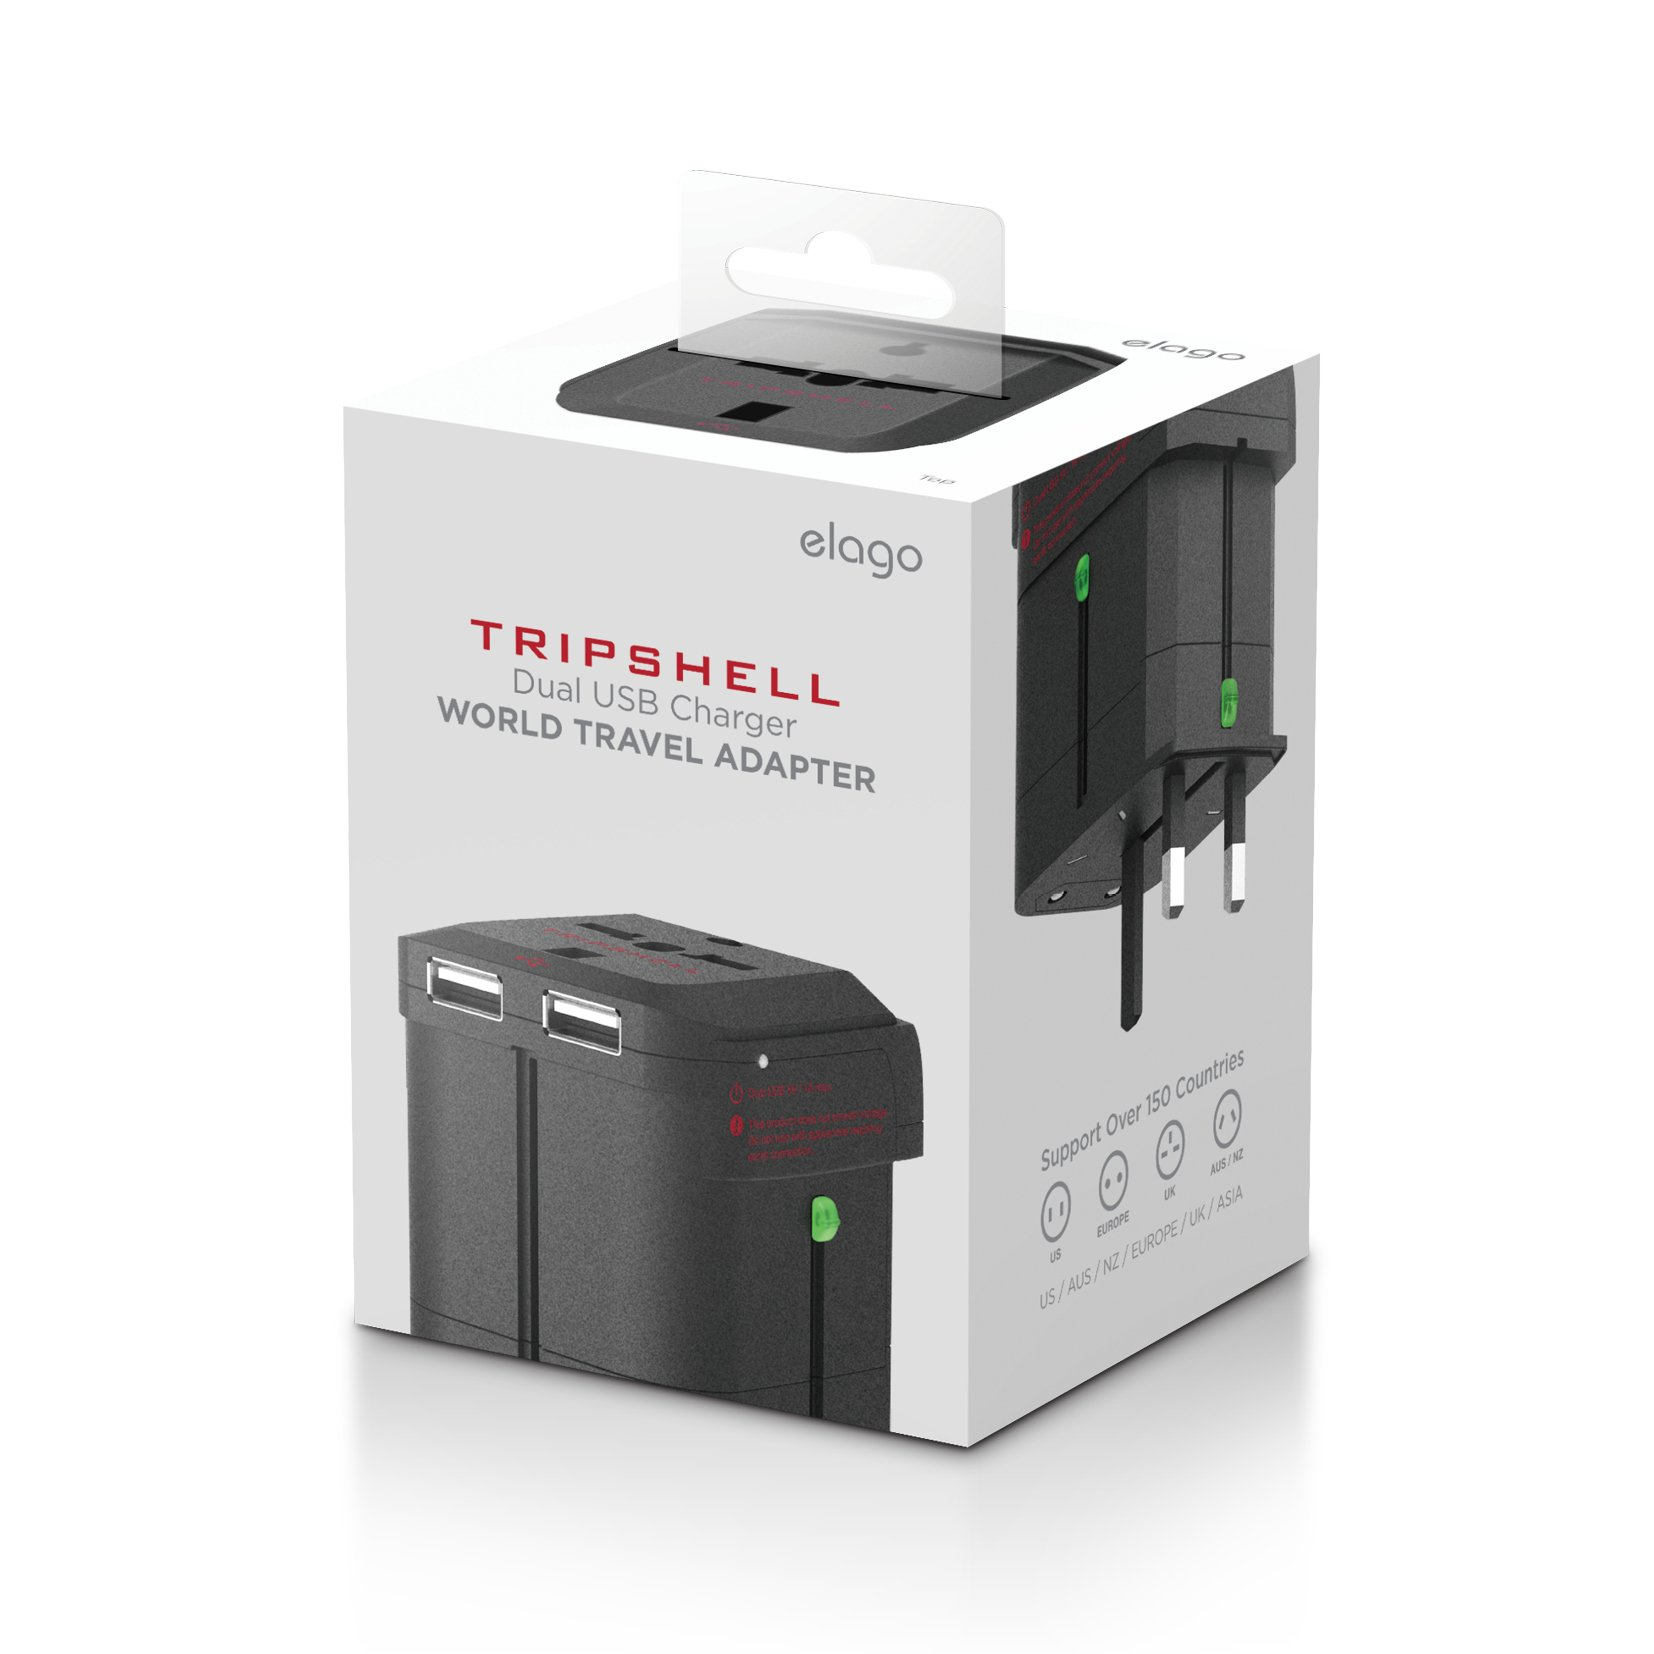 elago Tripshell Travel Adapter[All in One][Dual USB] - [Dual USB][Surge Protection][Compatible in 150 Countries]